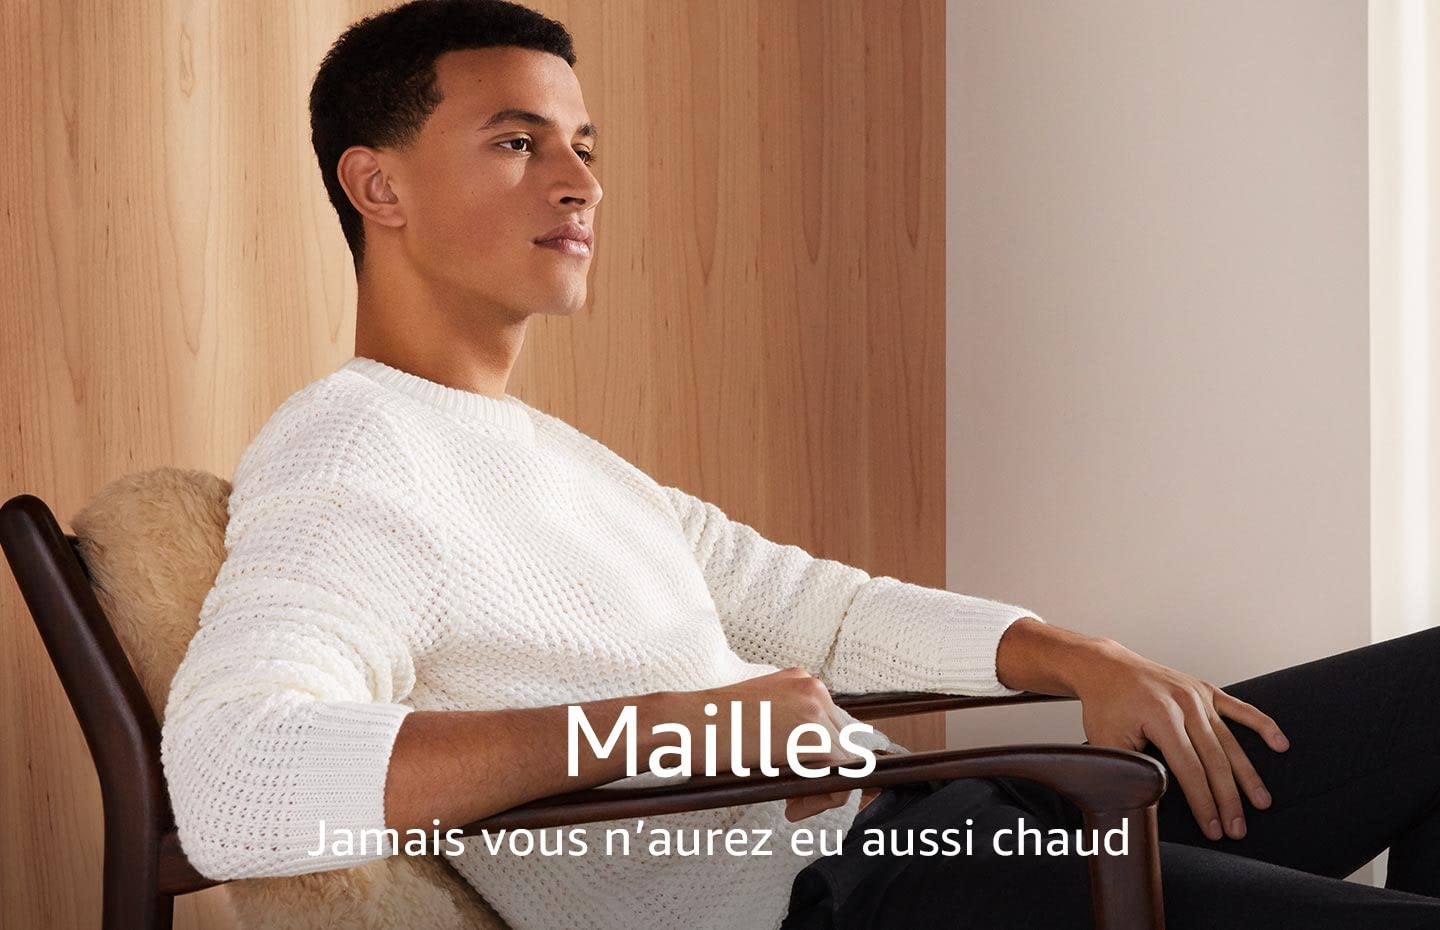 Mailles